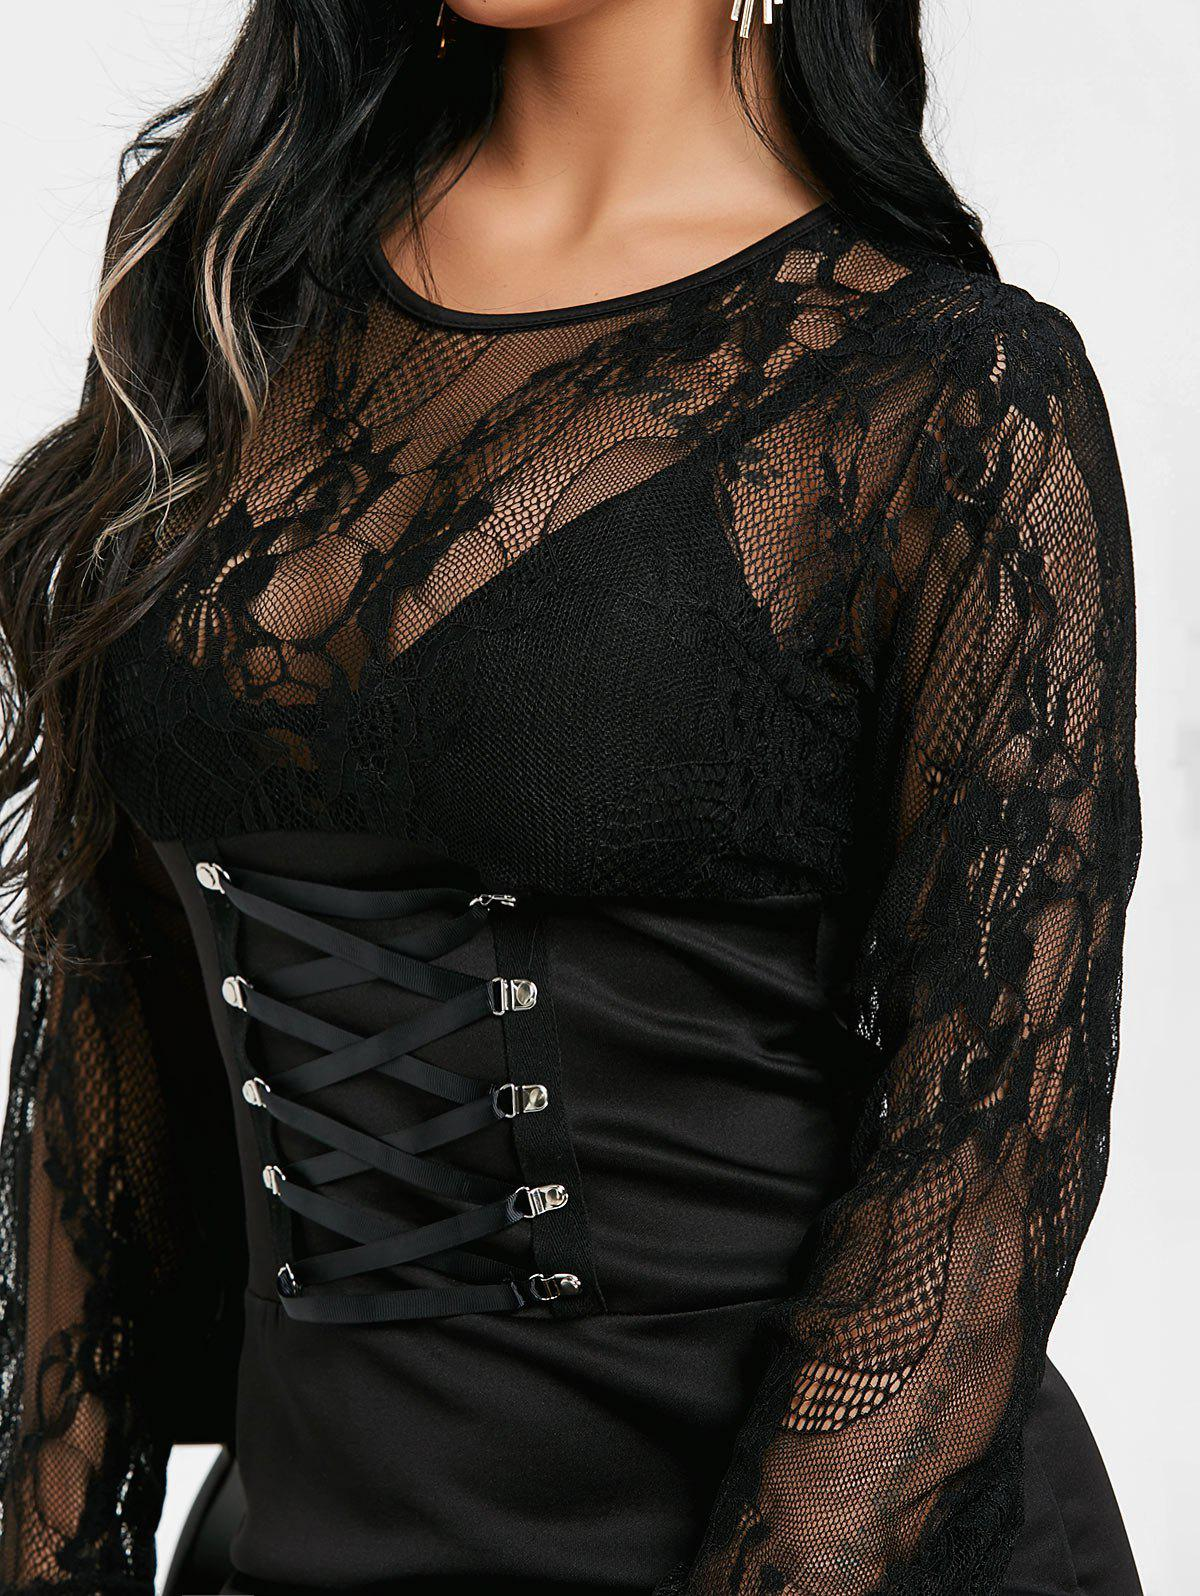 See Through Lace Insert Bodycon Mini Dress - BLACK L